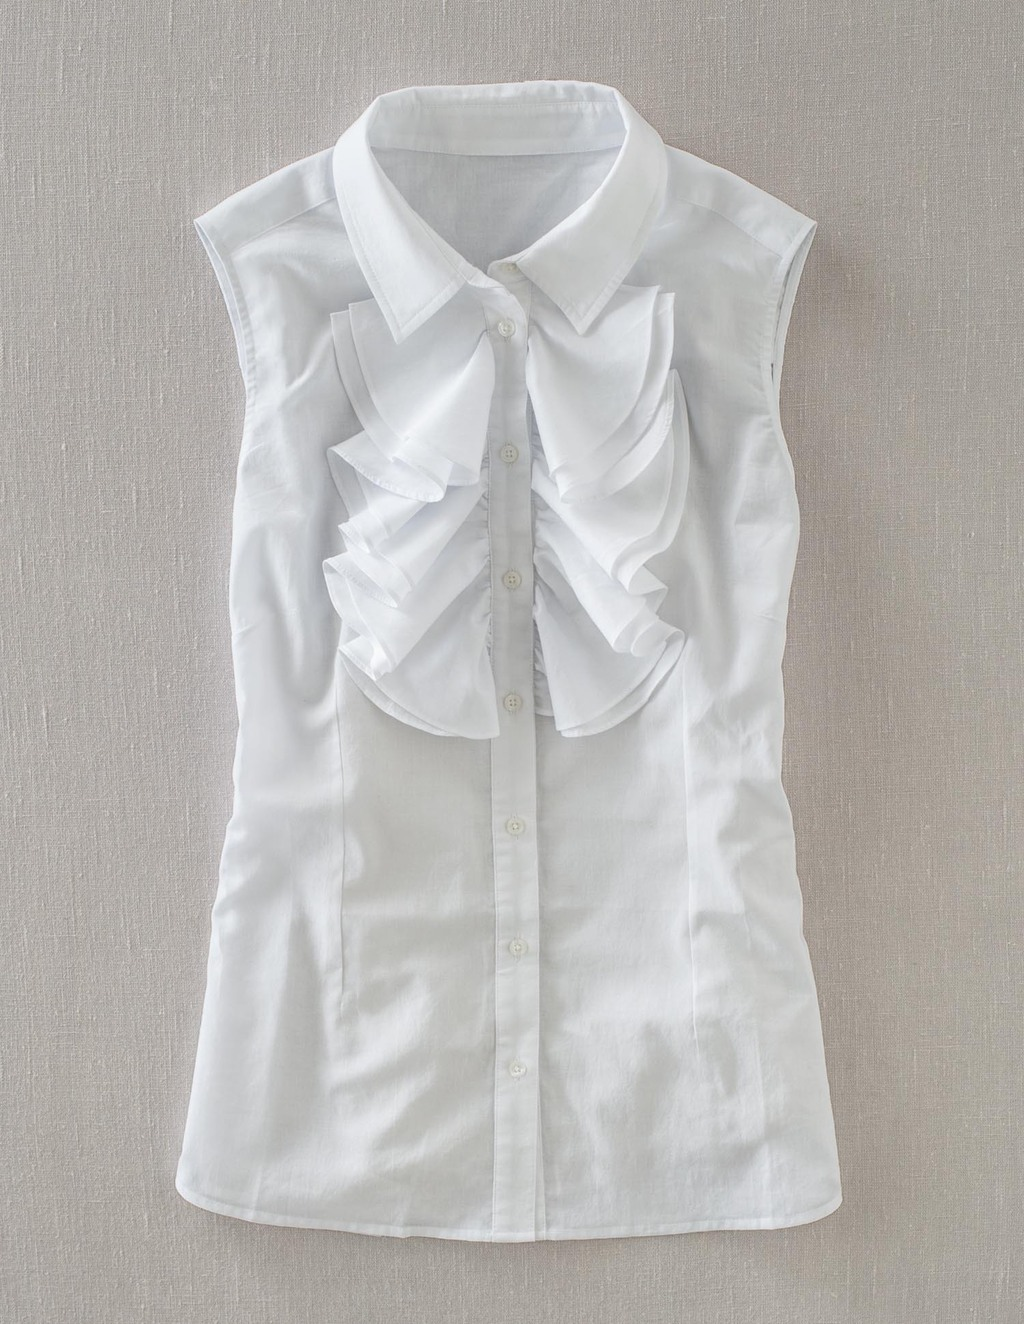 Sleeveless Ruffle Shirt - neckline: shirt collar/peter pan/zip with opening; pattern: plain; sleeve style: sleeveless; style: shirt; predominant colour: white; occasions: casual, evening, work; length: standard; fibres: cotton - 100%; fit: tailored/fitted; sleeve length: sleeveless; texture group: cotton feel fabrics; trends: sculptural frills; bust detail: tiers/frills/bulky drapes/pleats; pattern type: fabric; season: s/s 2013